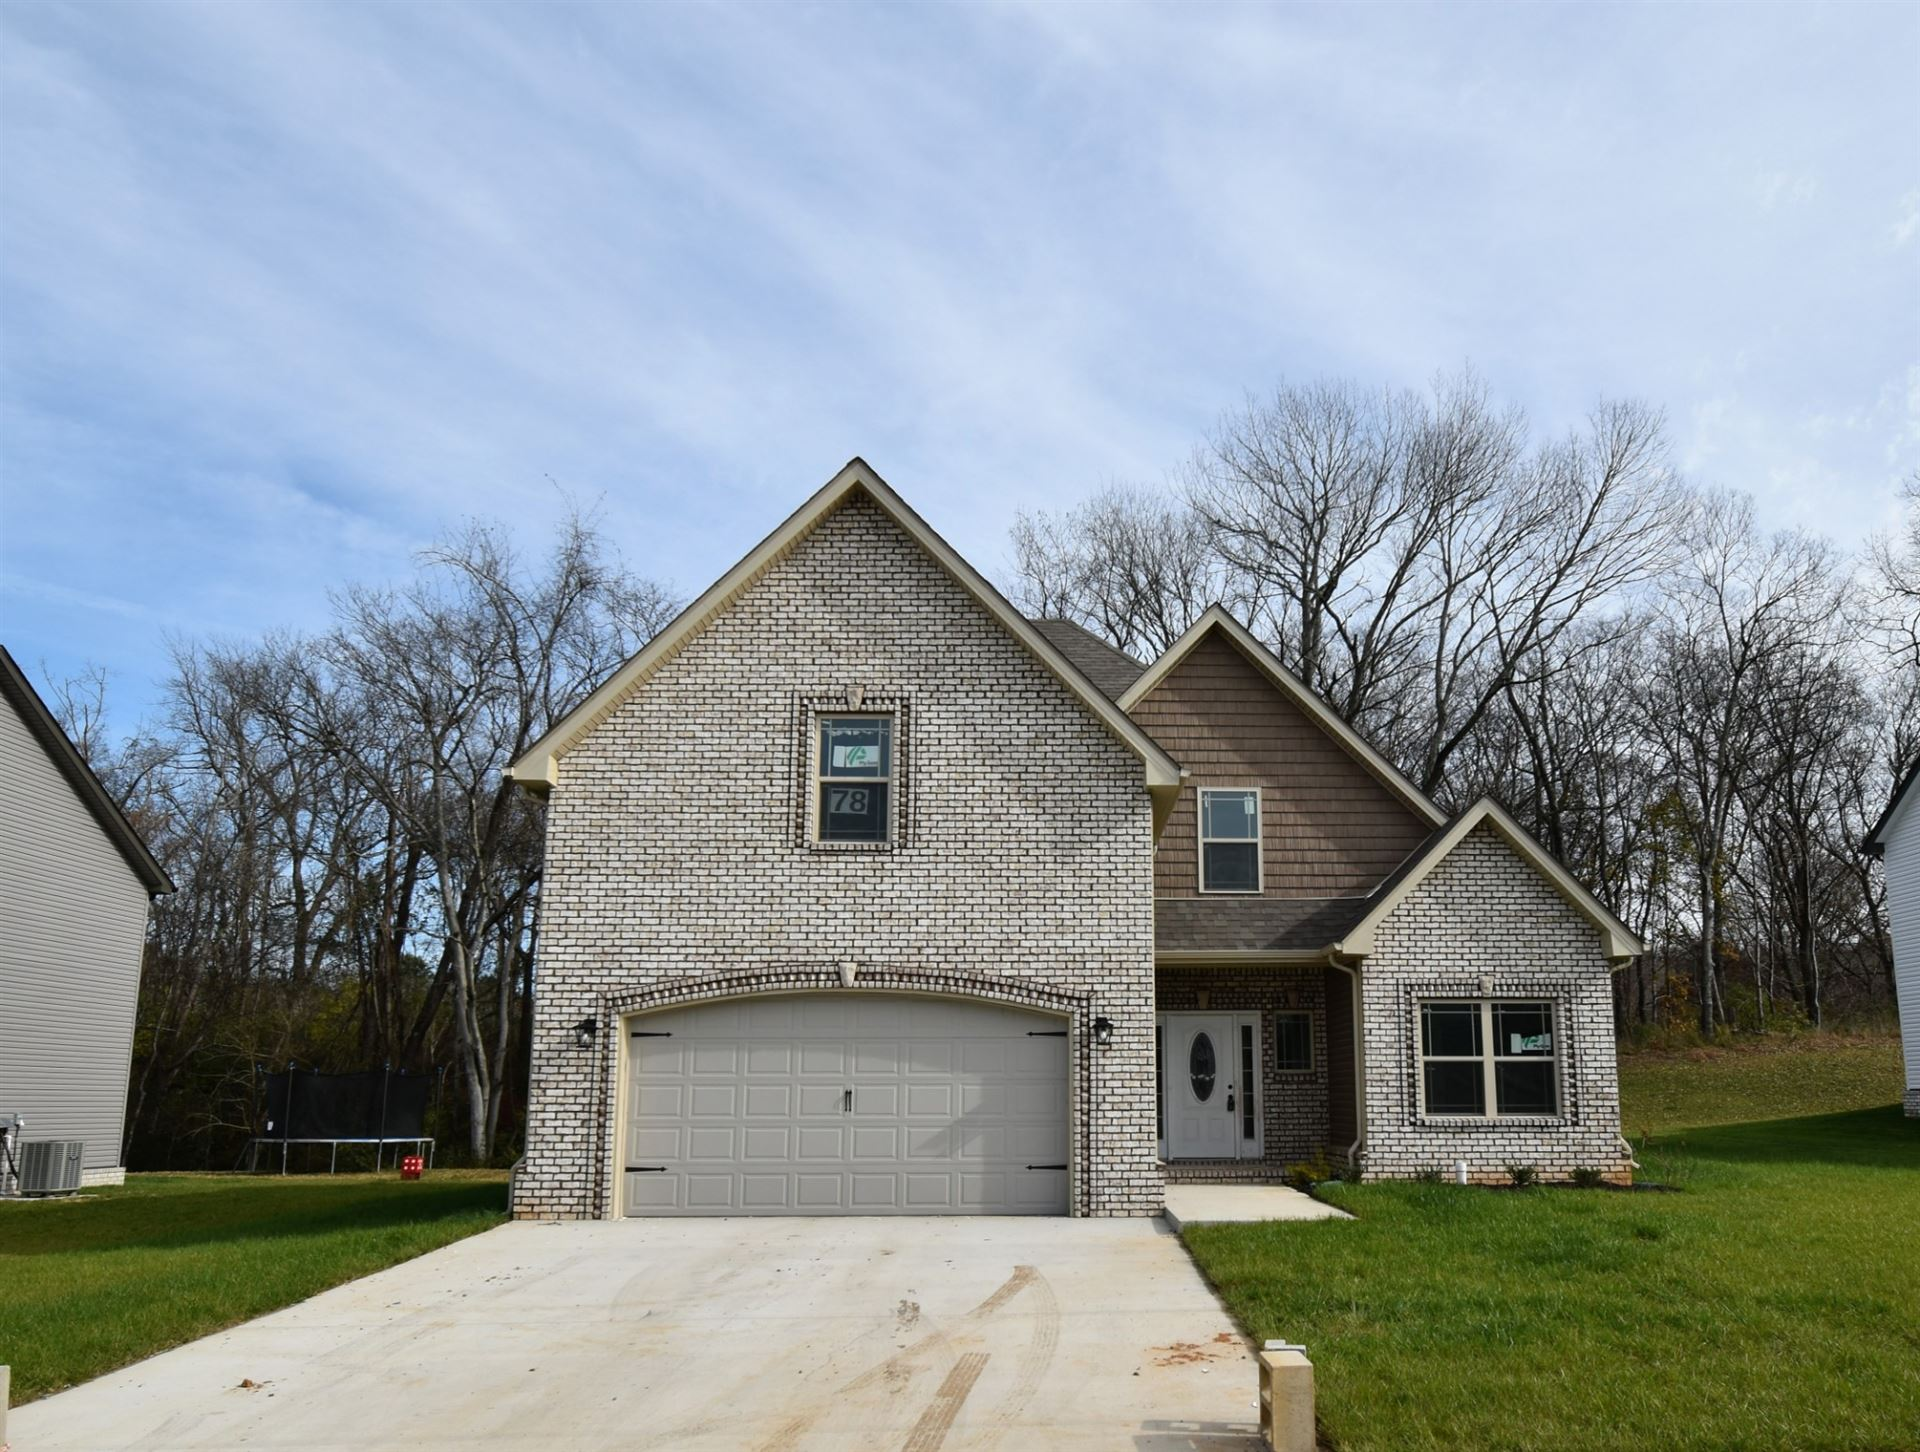 78 River Chase, Clarksville, TN 37043 - MLS#: 2292331